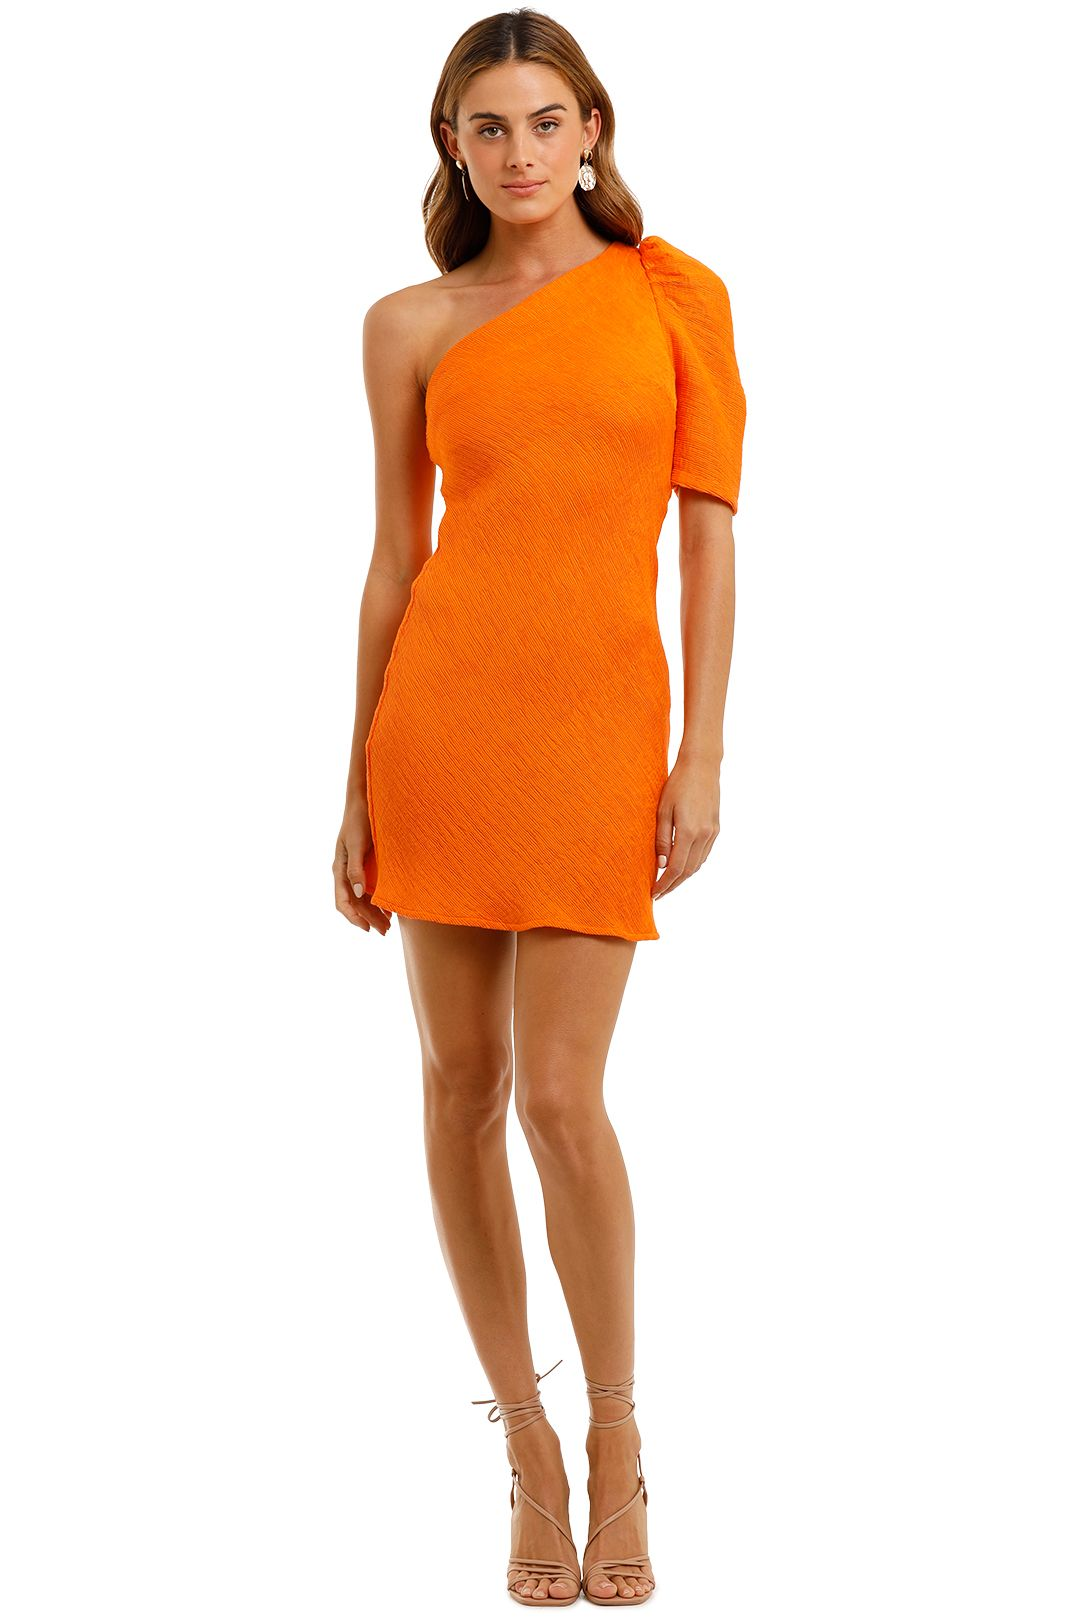 By Johnny Shell Shoulder Sleeve Mini Dress